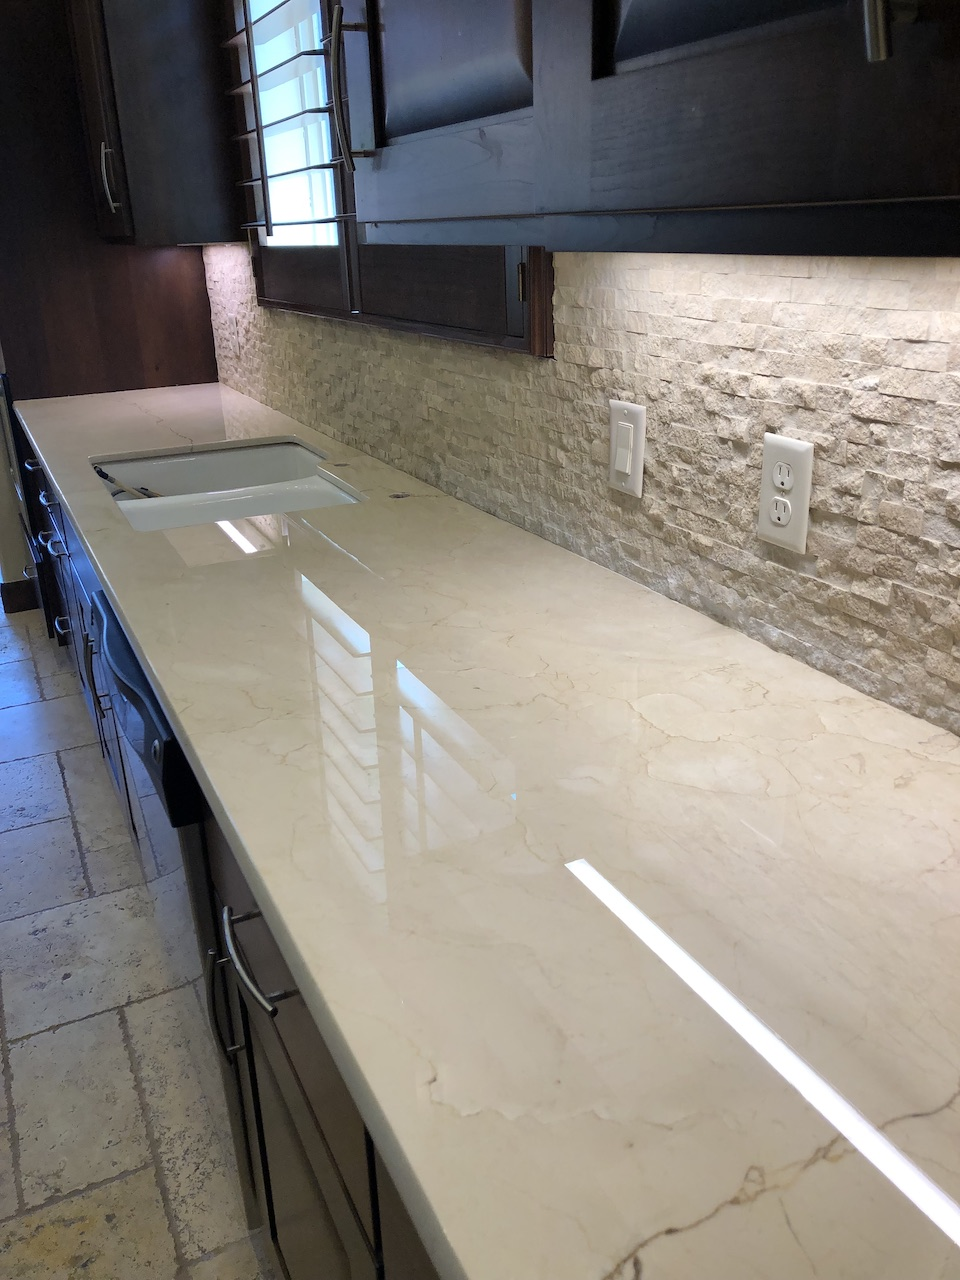 TuffSkin enhances the look of the stone and protects the surface from etching and staining.